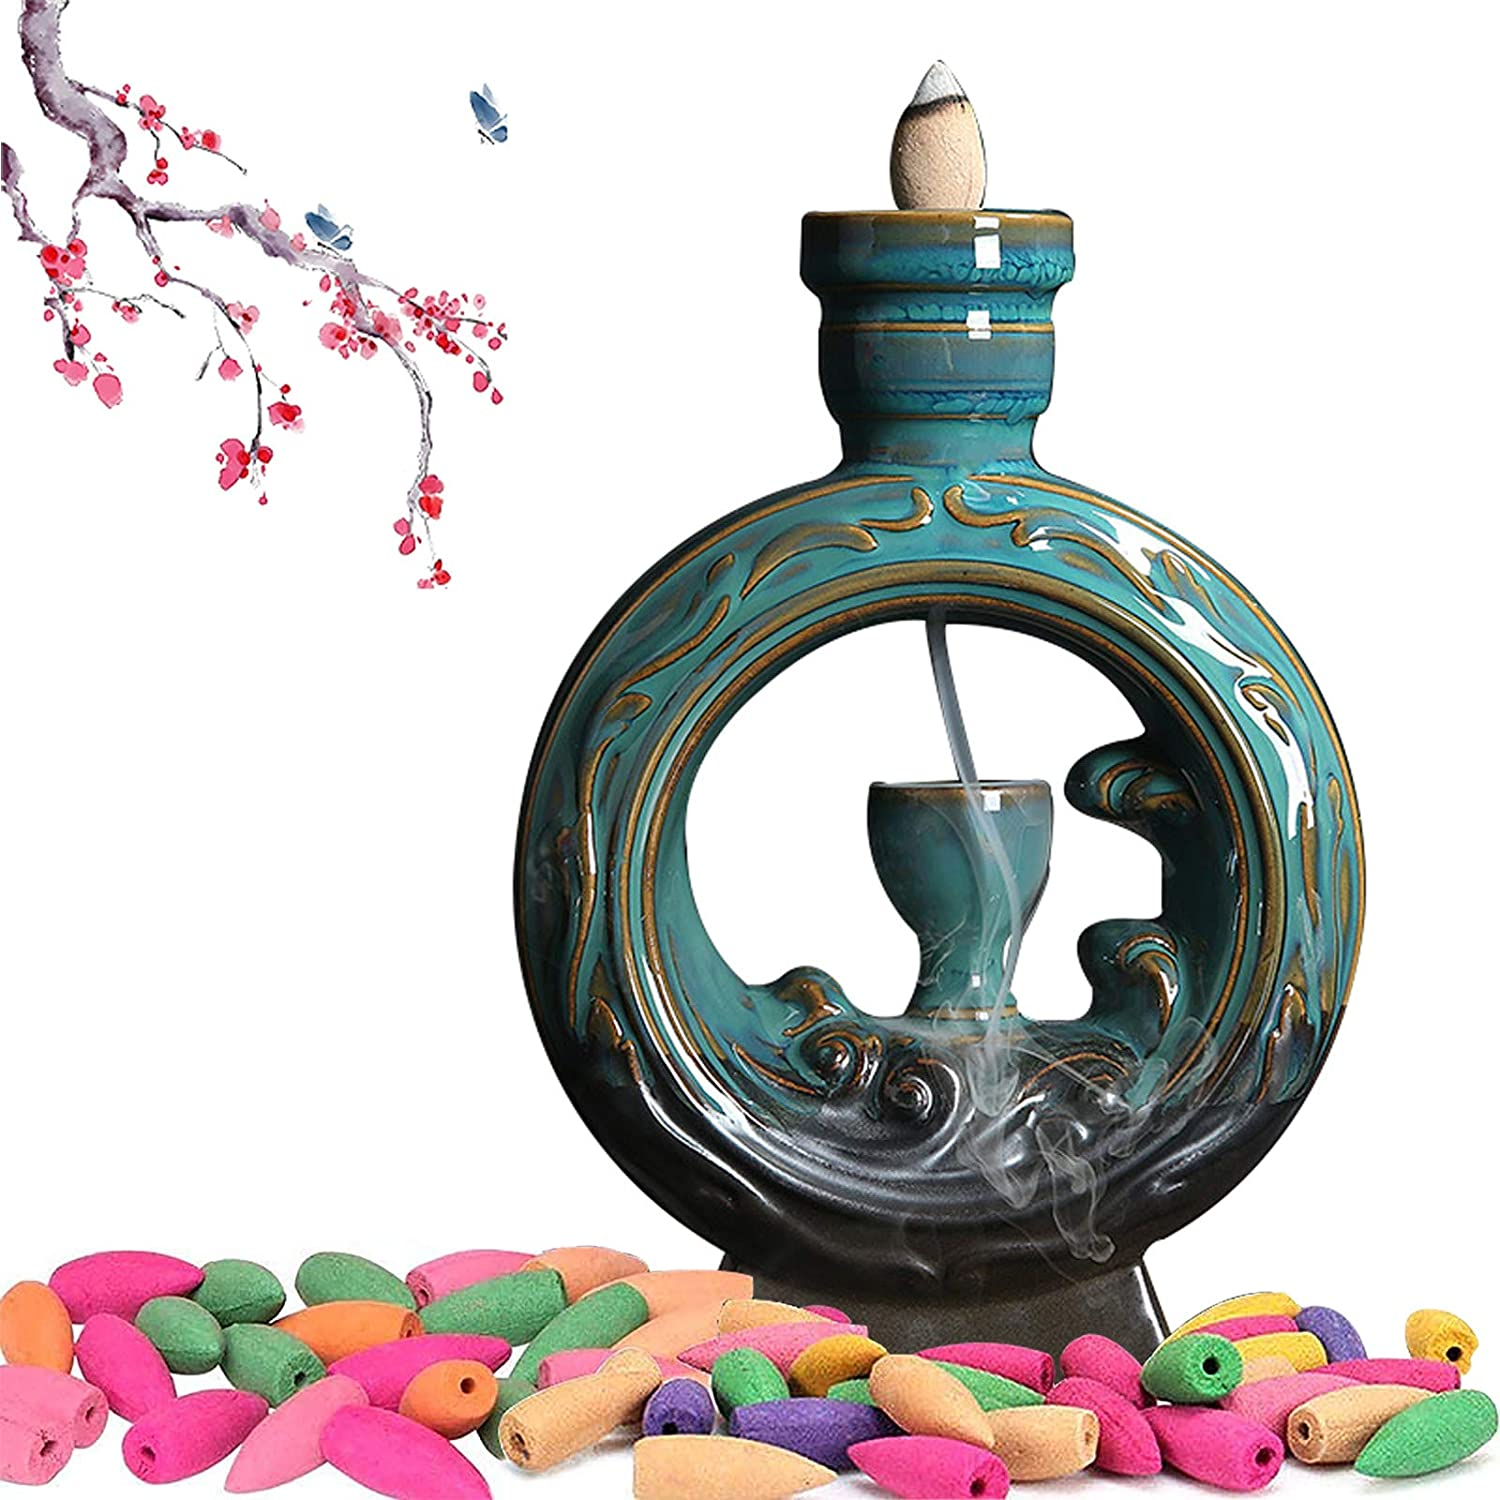 ZWCIBN Incense Burner,Backflow Incense Fountain Waterfall Stick Holder,Incece Falls Meditation Decor for Your Room